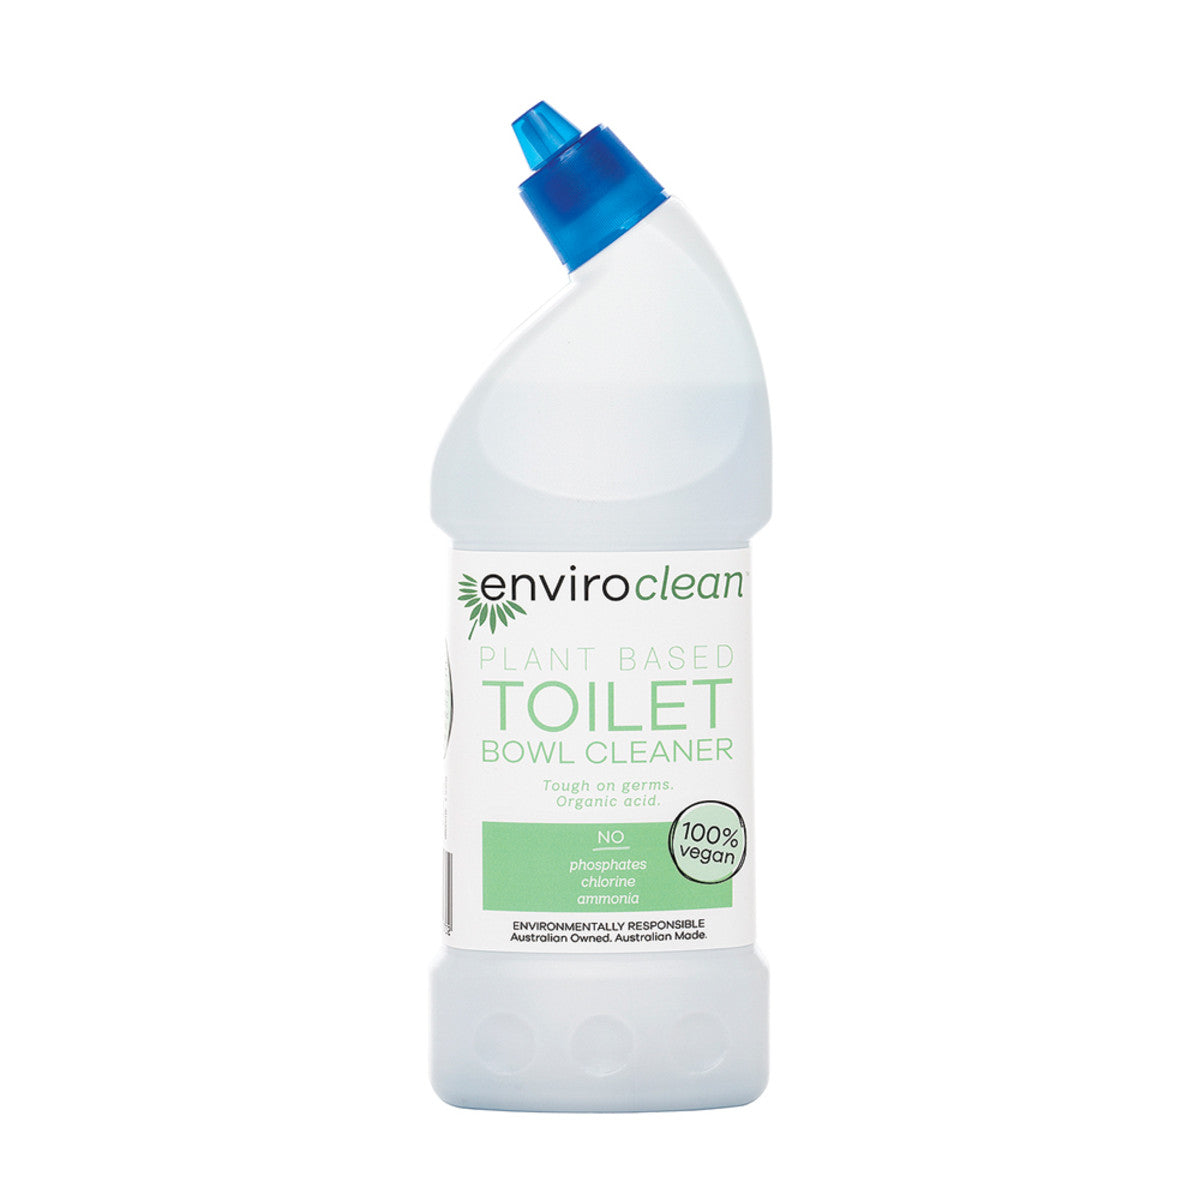 EnviroClean Plant Based Toilet Bowl Cleaner - The Conscious Spender